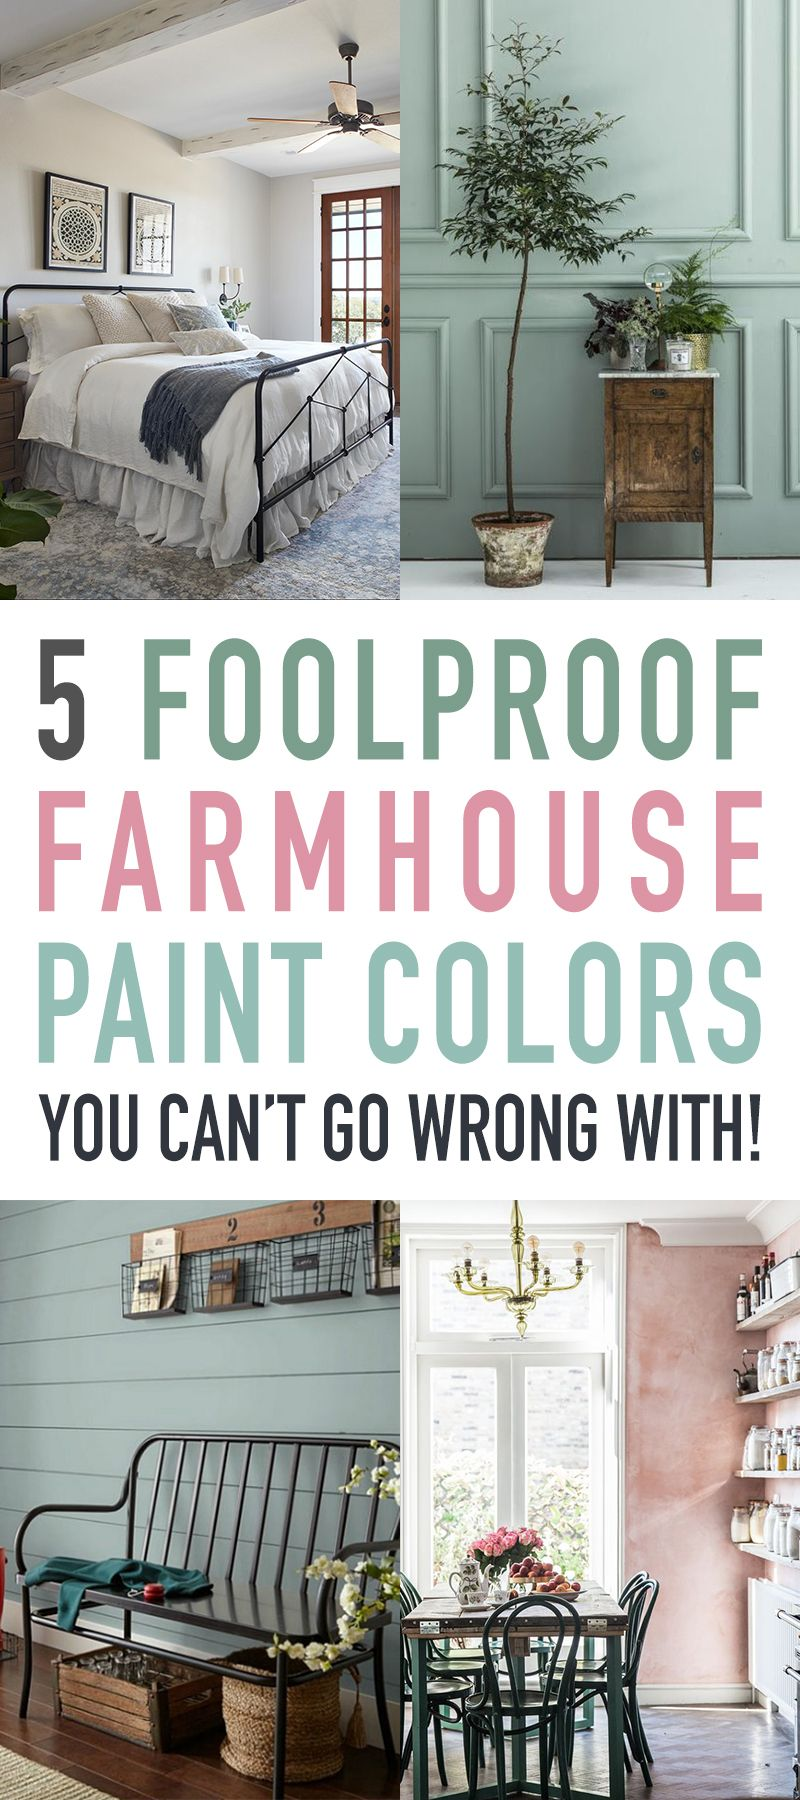 5 Foolproof Farmhouse Paint Colors You Can't Go Wrong With images